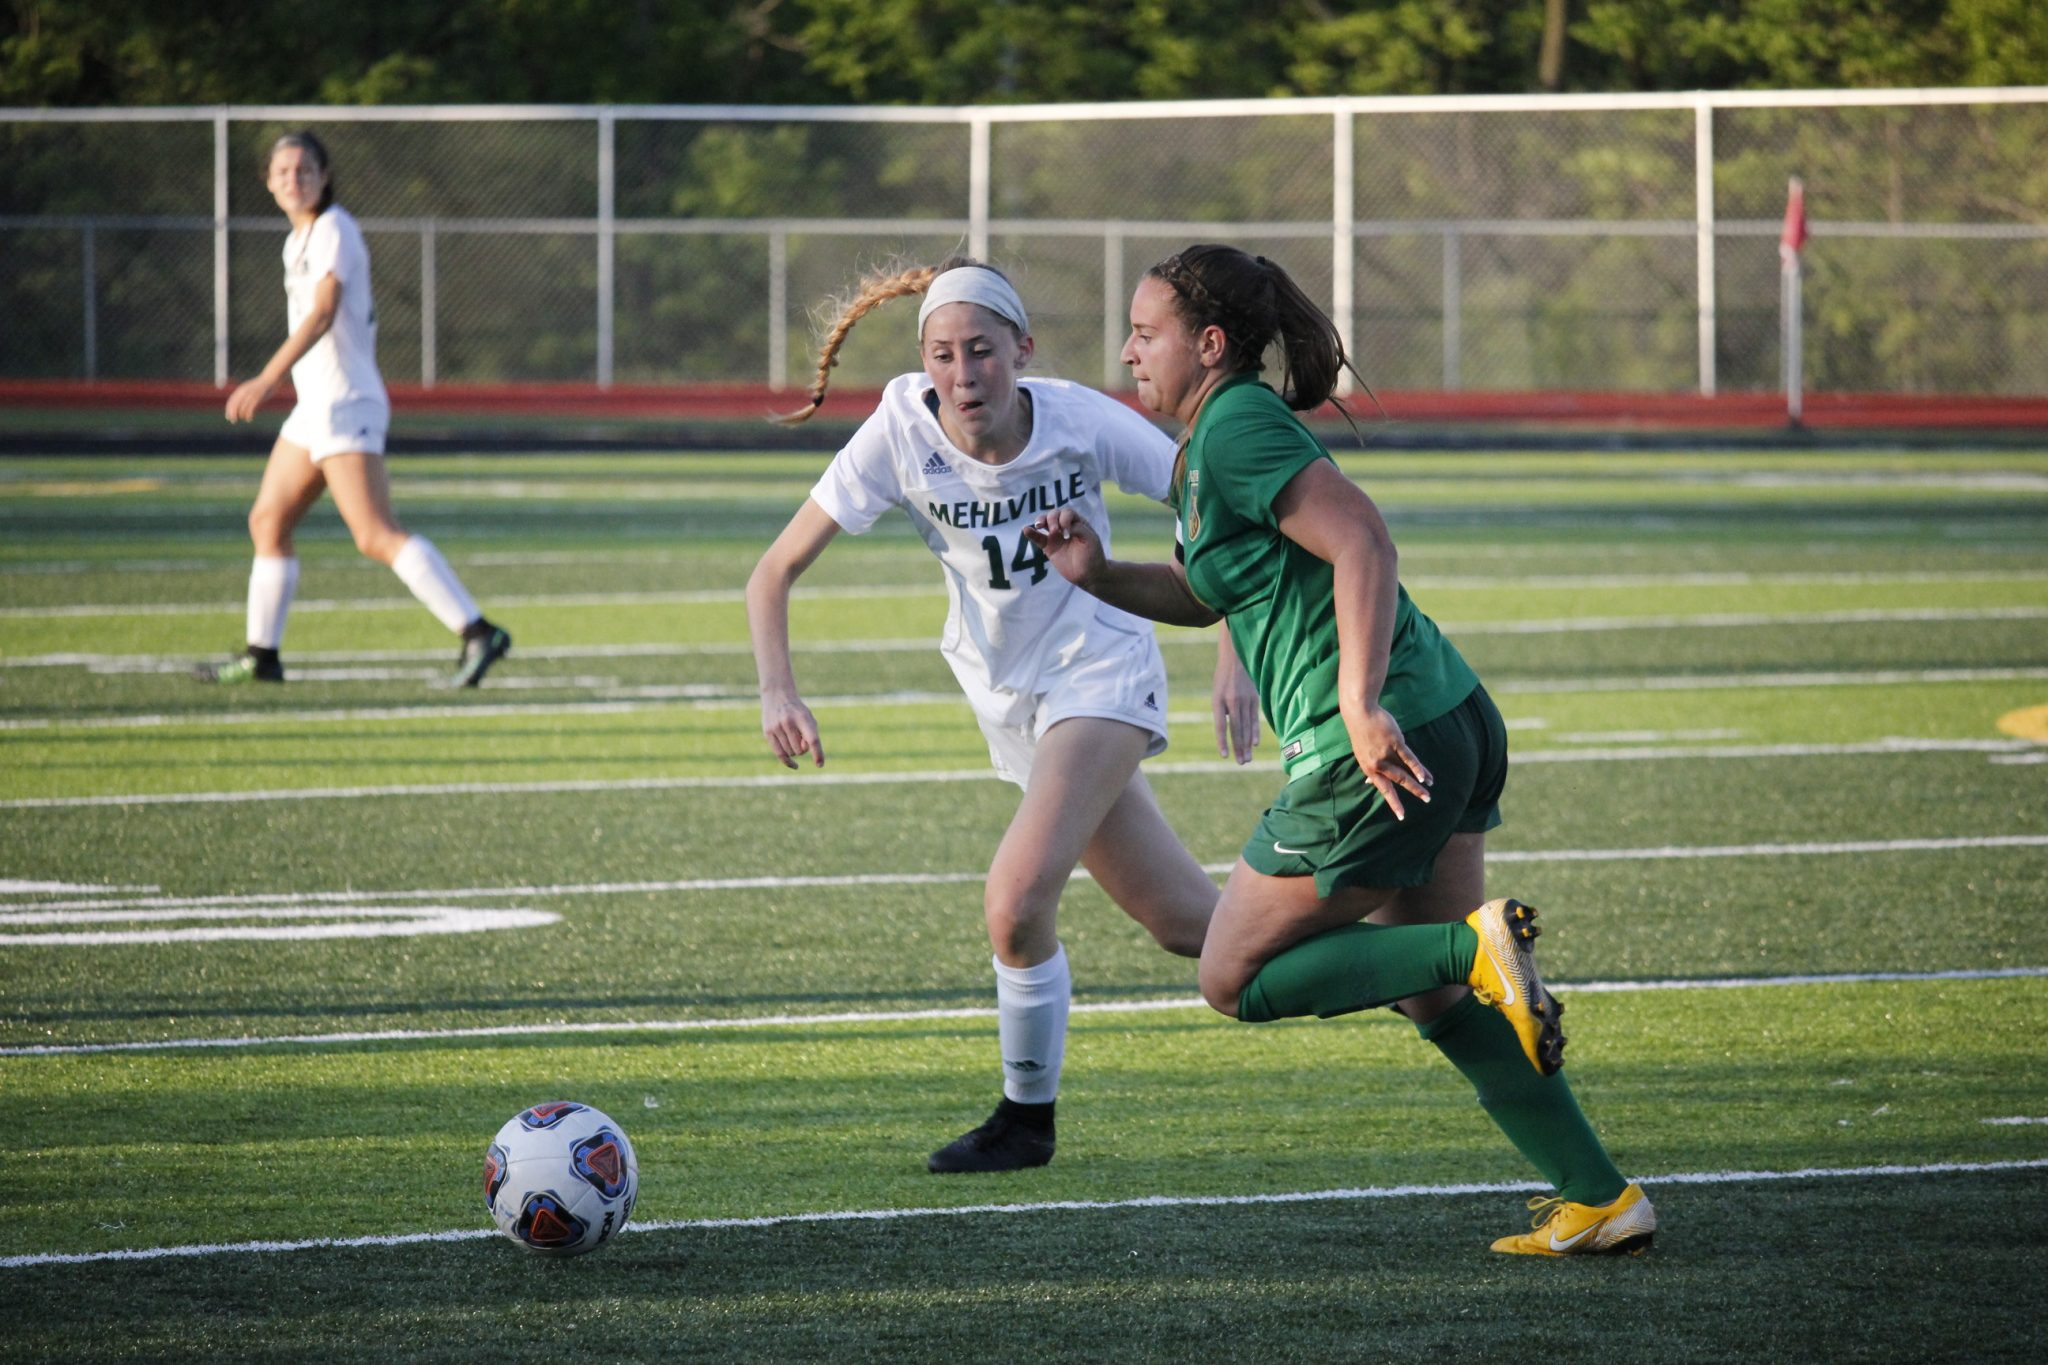 Mehlville midfielder Abigial Miller, junior, races after the ball alongside Lindbergh midfielder and captain of the team, Carly Boccardi, senior, during a game at Oakville High School May 15. With Lindbergh's 1-0 overtime win, the team will advance to sectionals against Jackson High School May 21. Photo by Erin Achenbach.